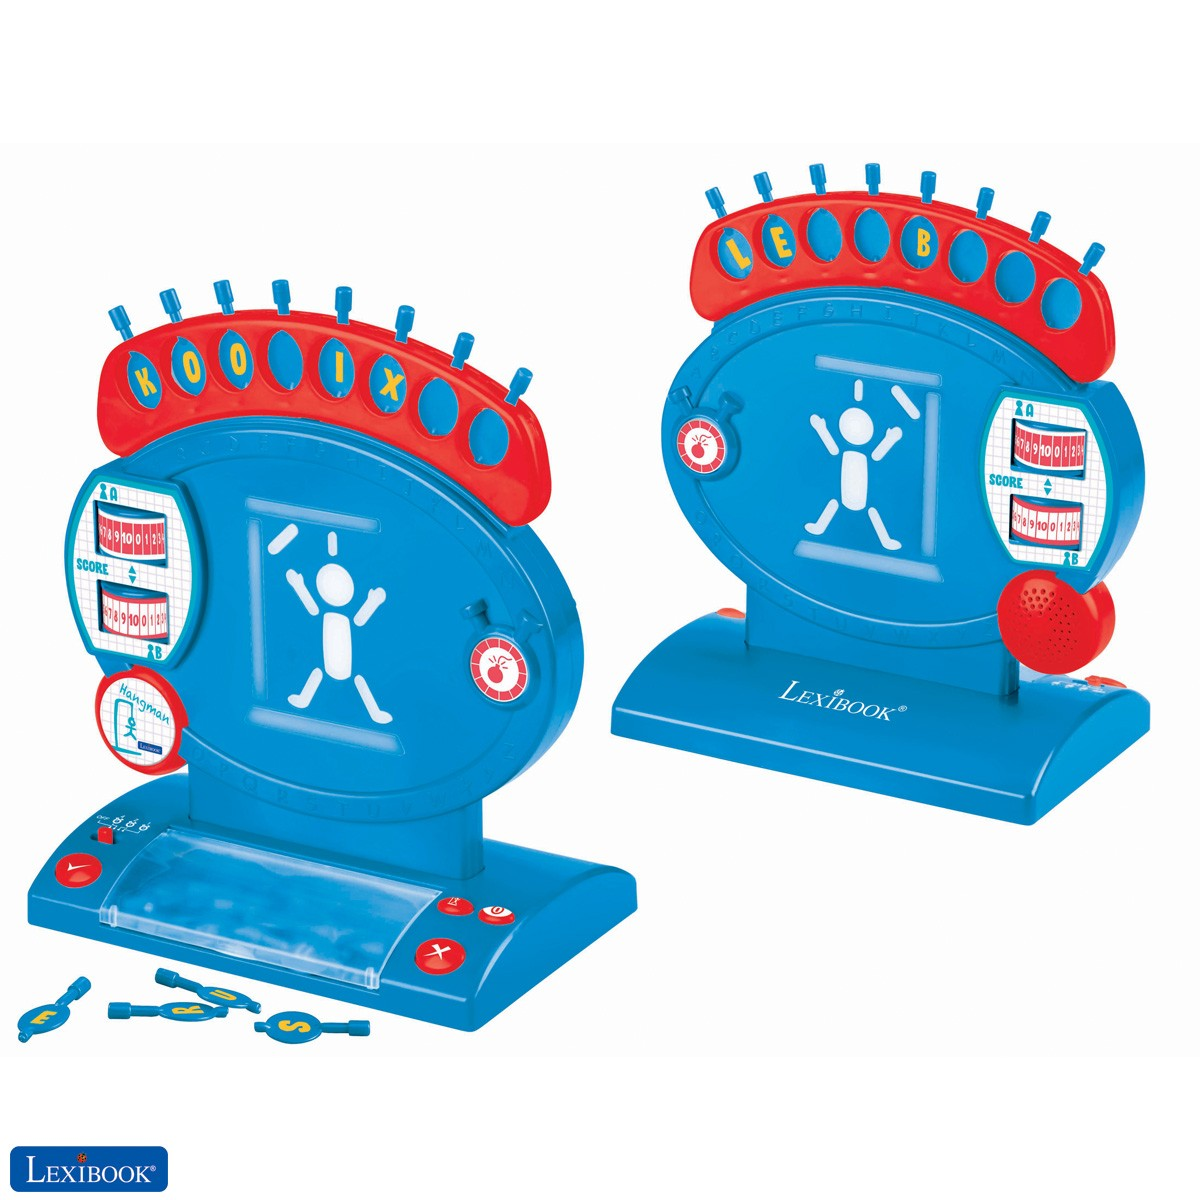 Electronic Hangman Game, Child and family board game